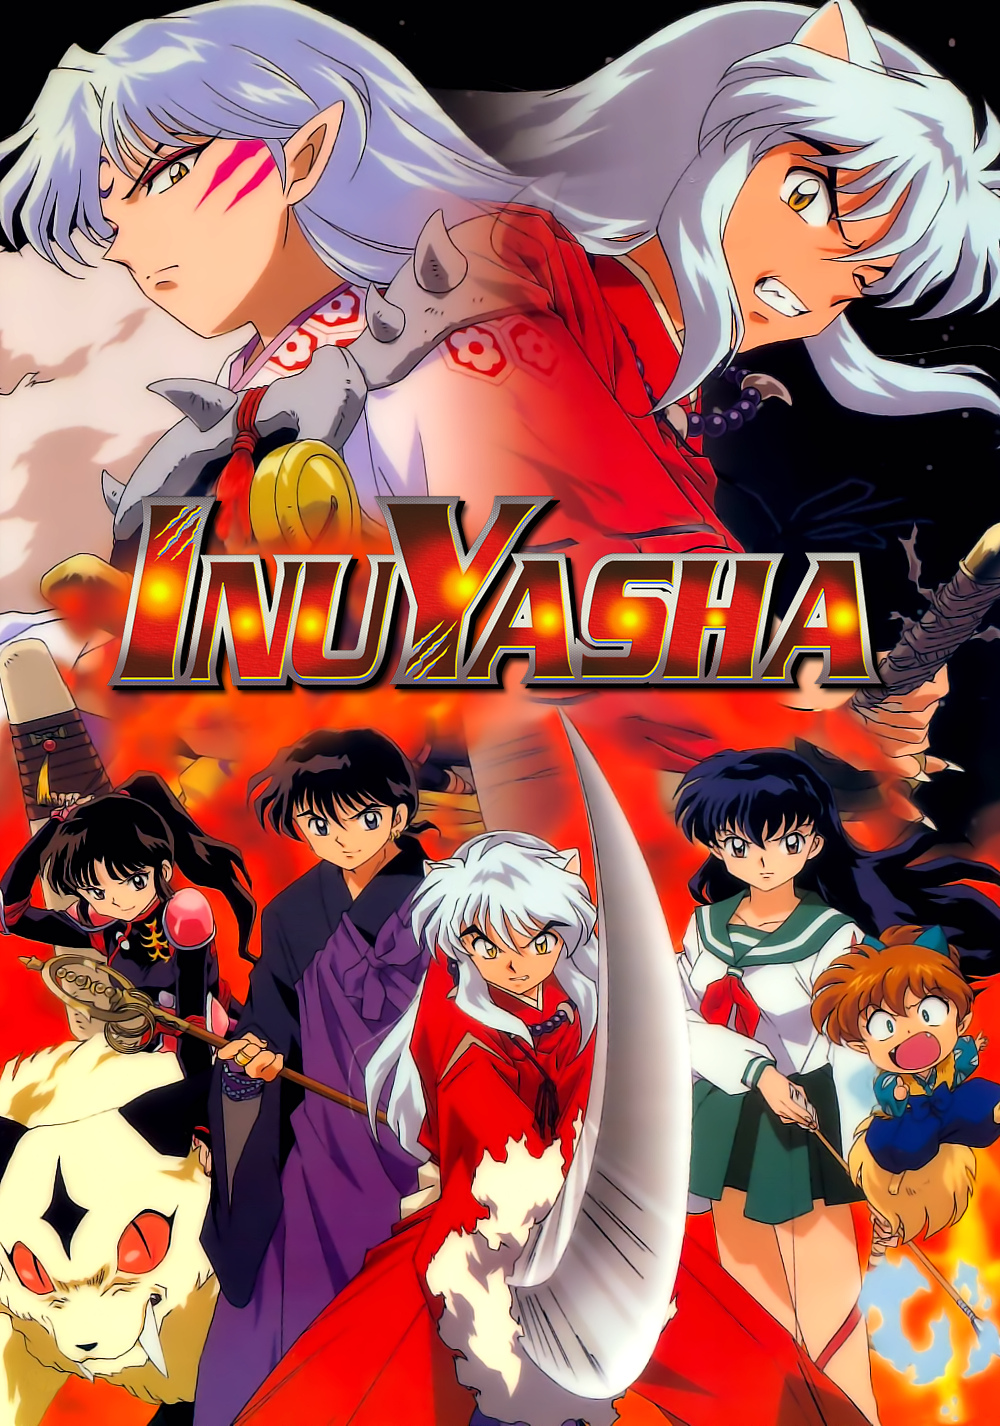 Inuyasha (TV Series 2000–2004) - IMDb